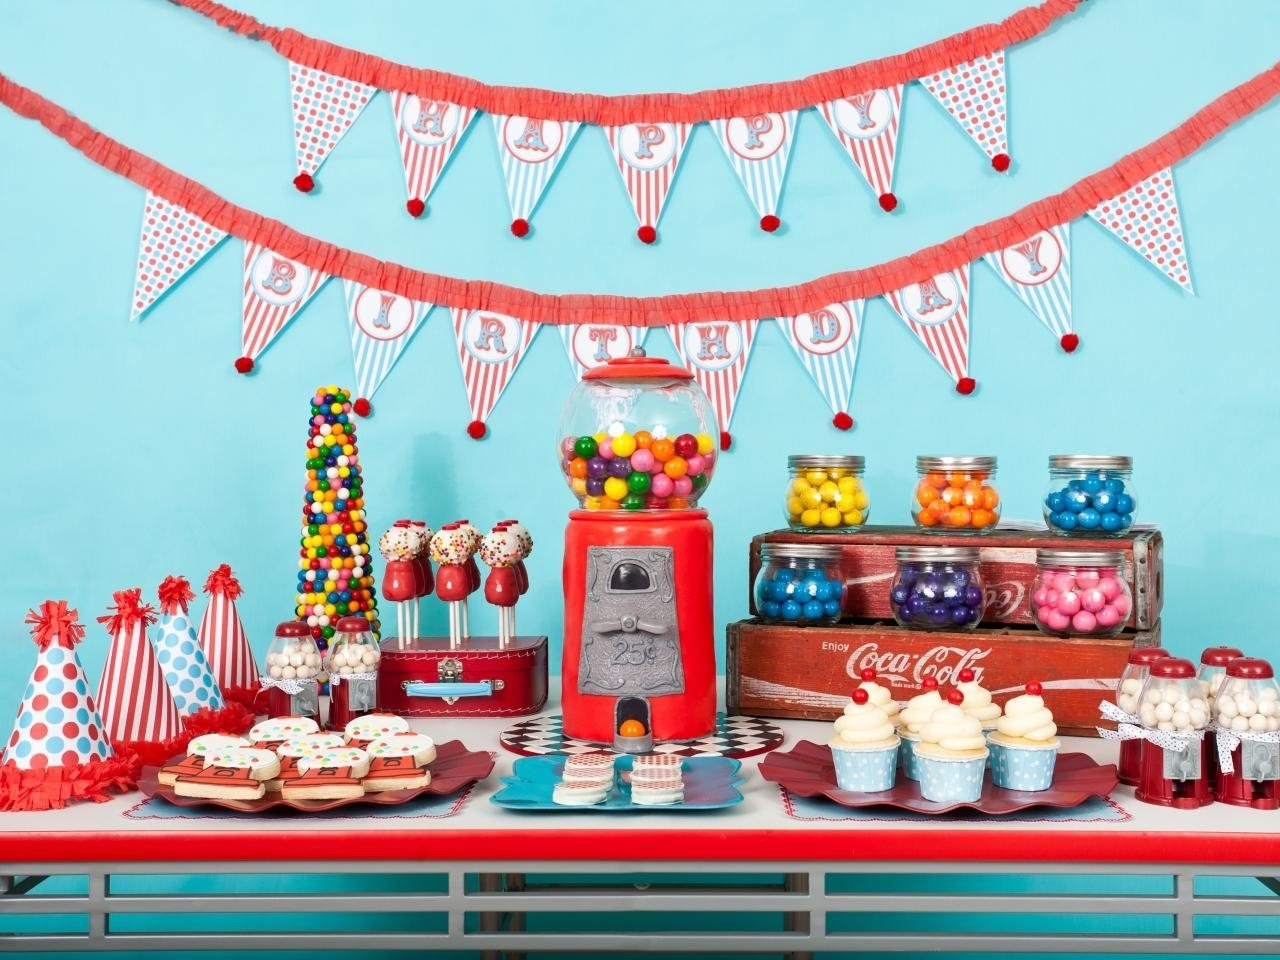 10 Nice 12 Year Old Birthday Party Ideas For Boys best boy birthday party theme decorations 12 year old birthday party 5